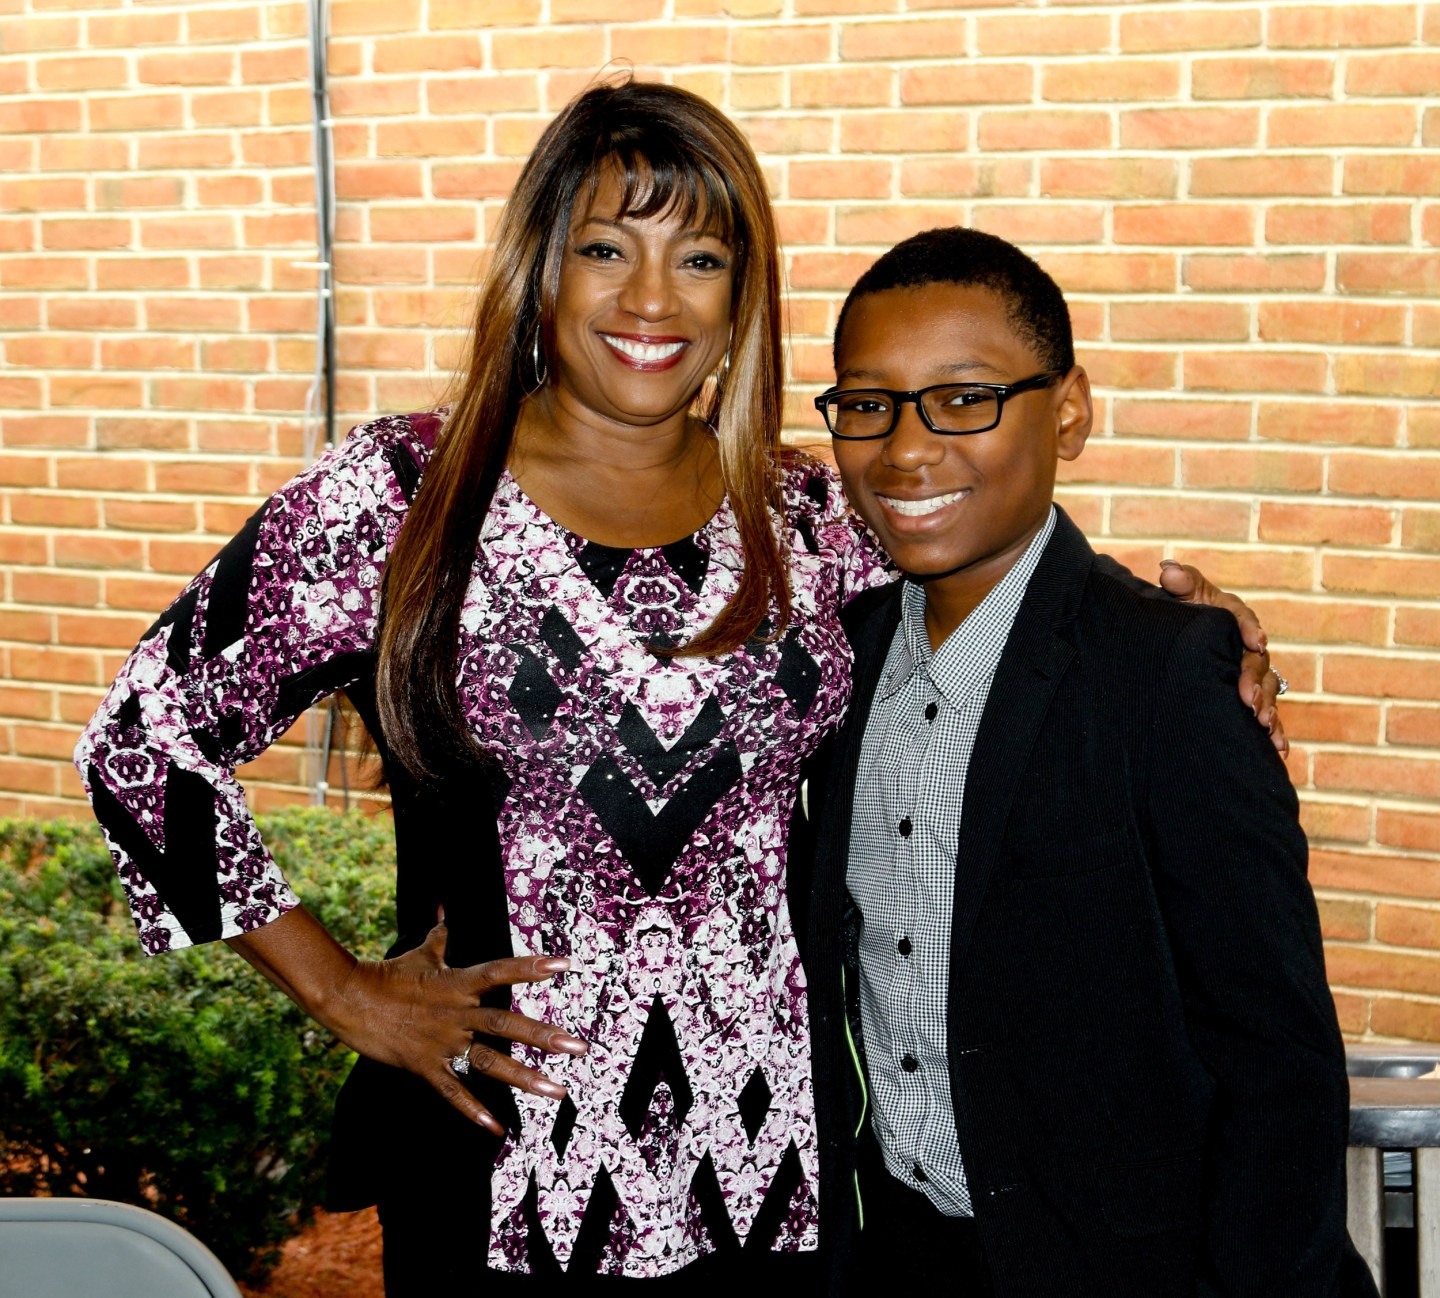 Bern Nadette Stanis and young Henry Davis                                                   photo: Anthony Moore